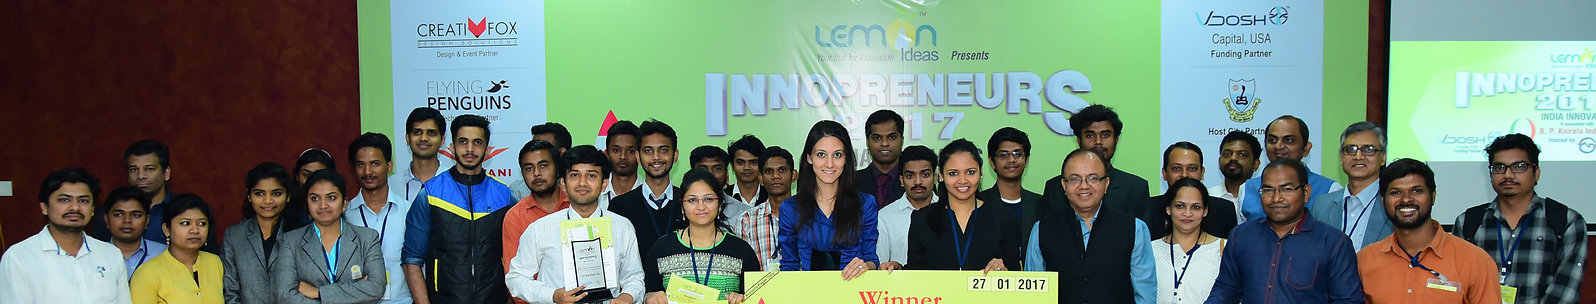 Innopreneurs Winners 2017